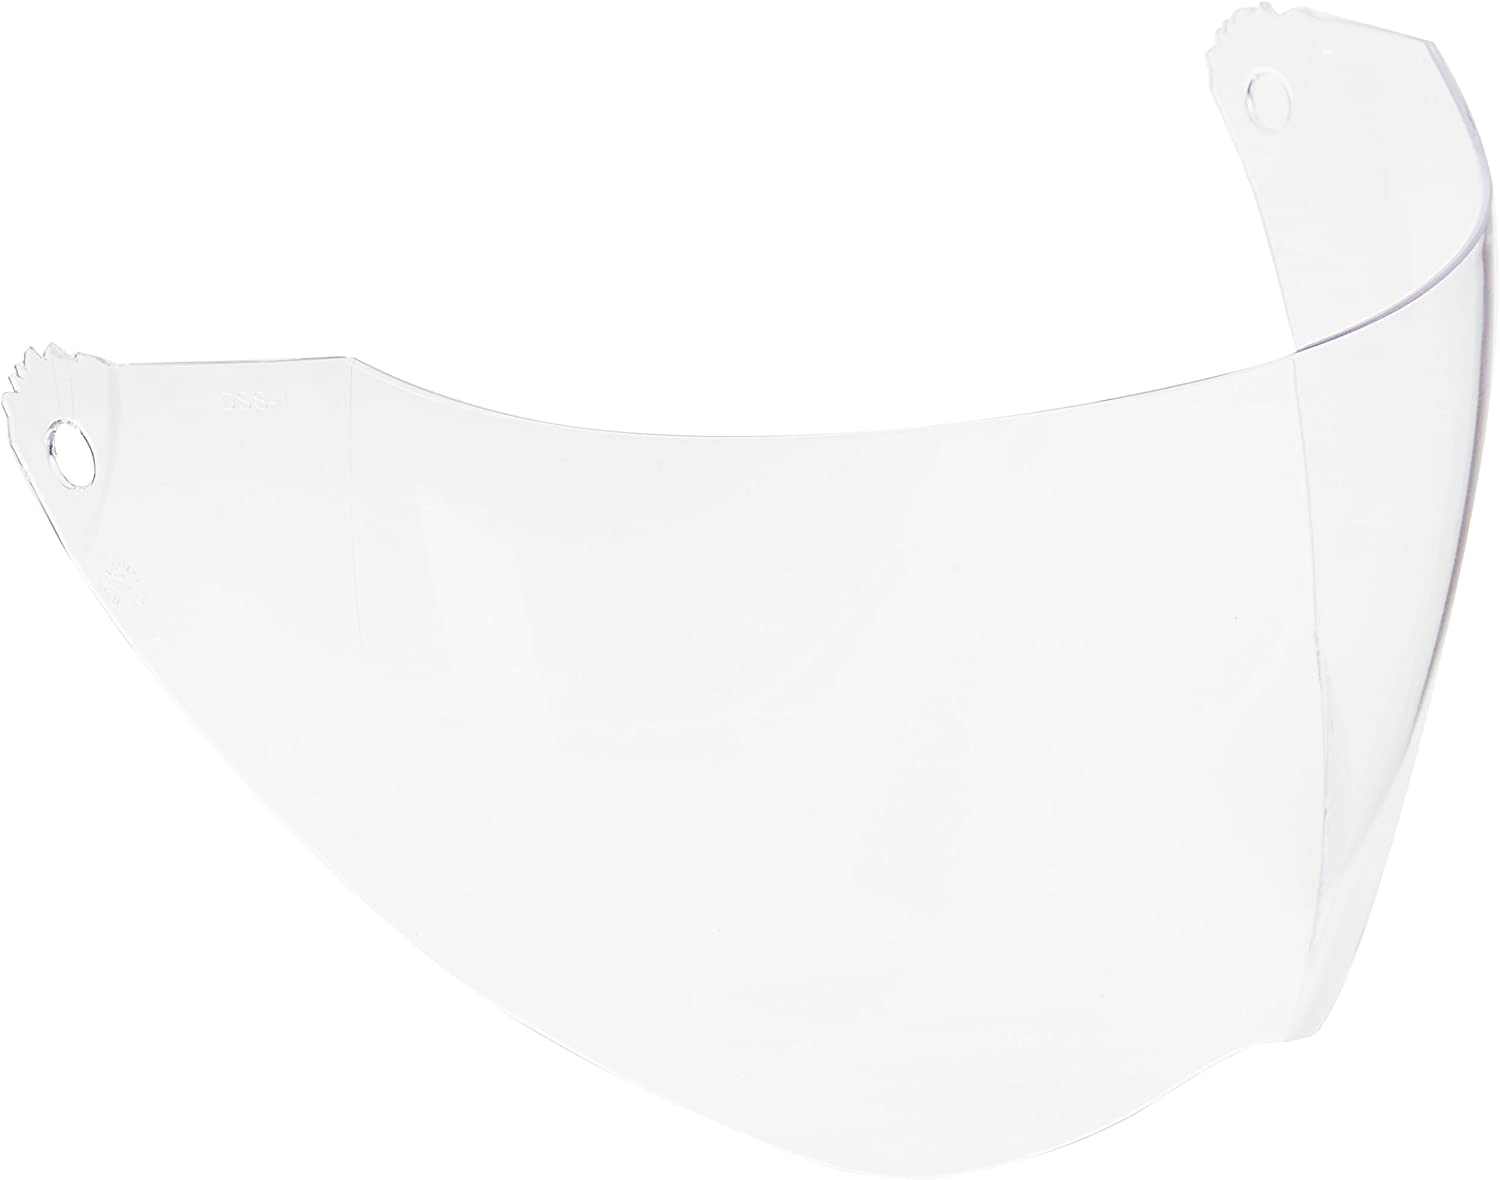 Gmax G011032 Helmet Shield